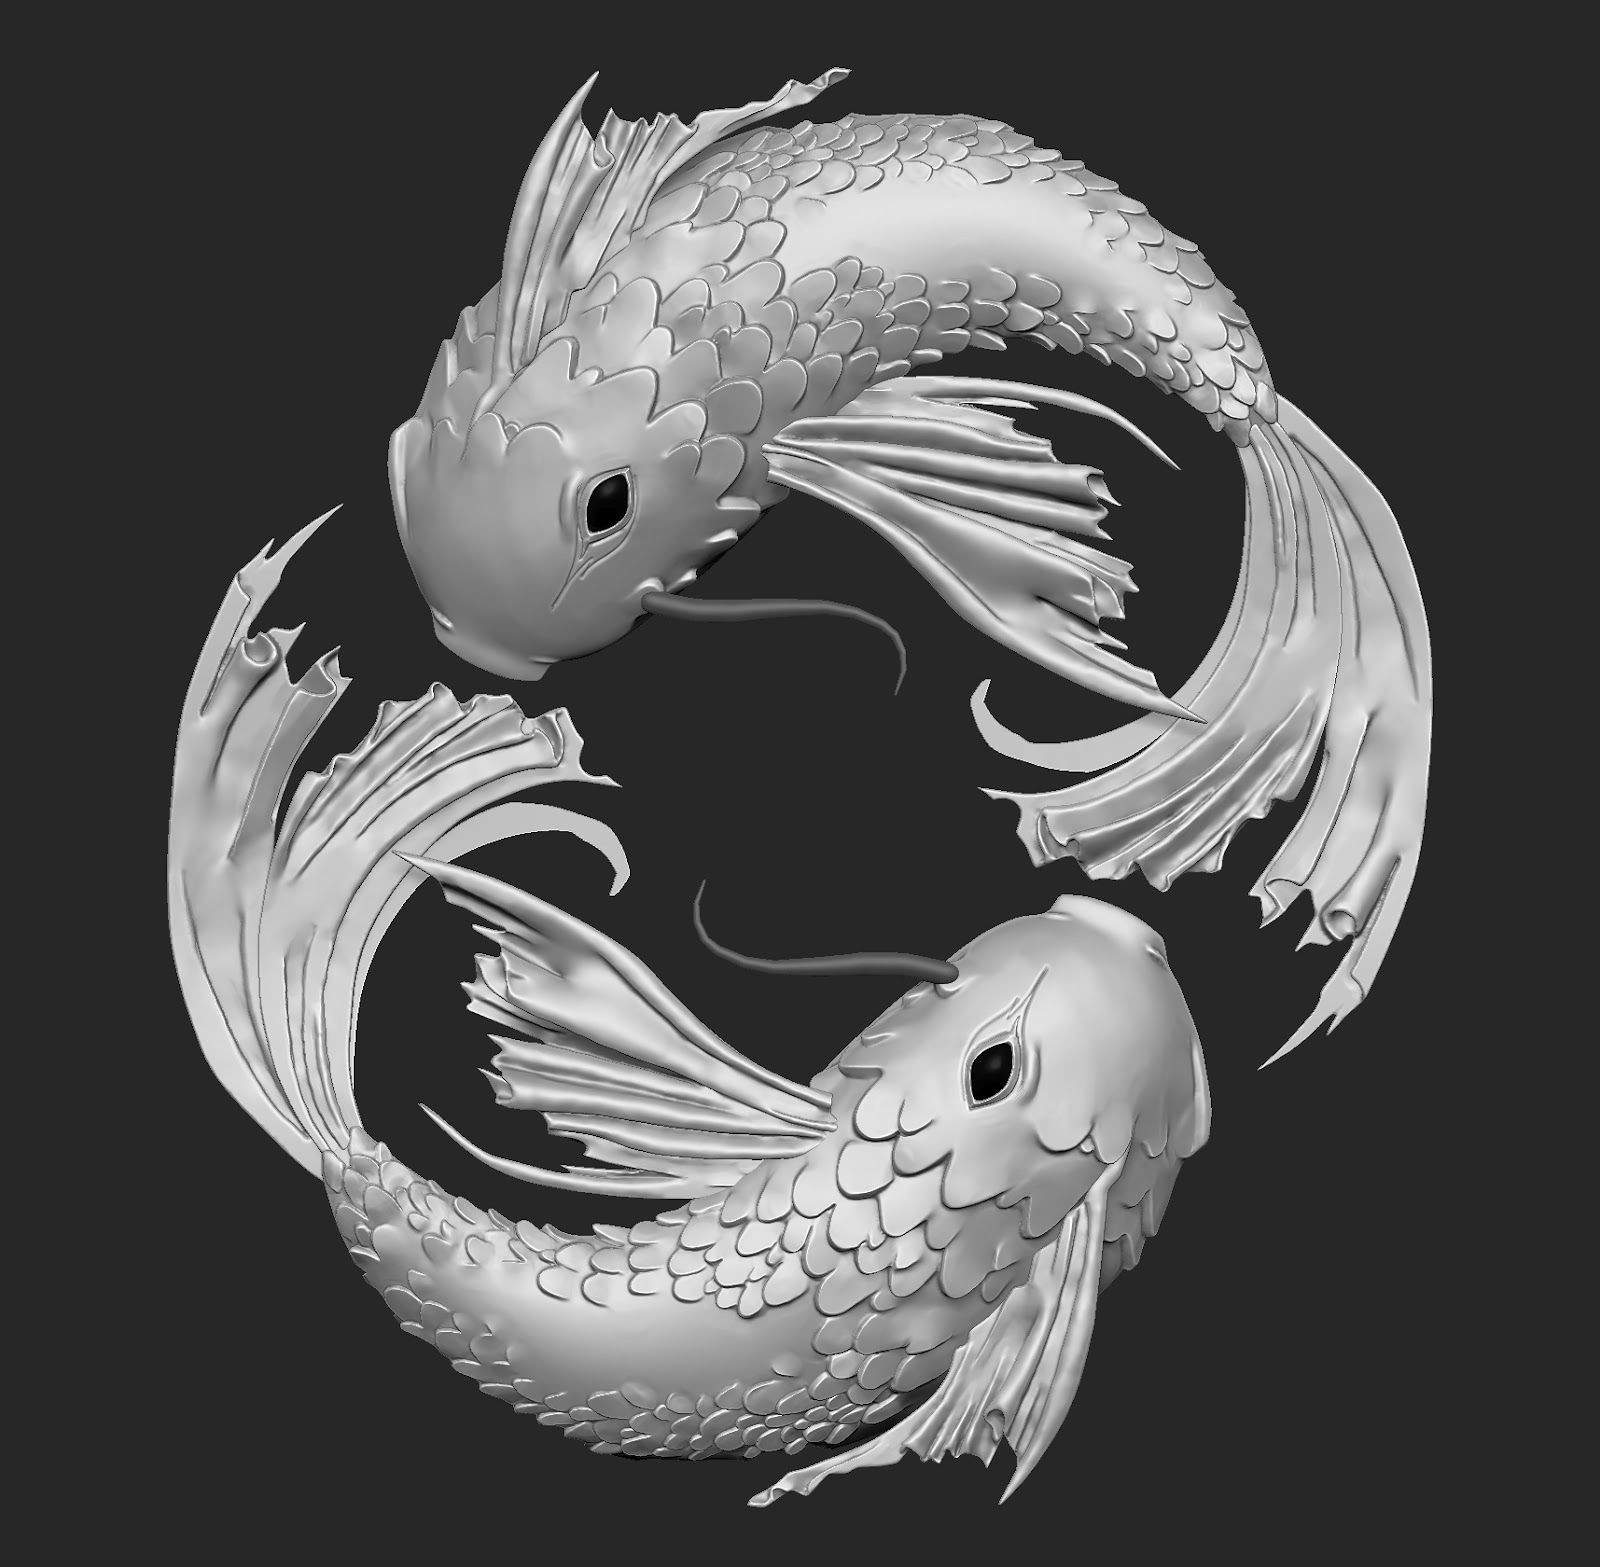 Jonathan flanders pisces w i p for Koi fish pisces